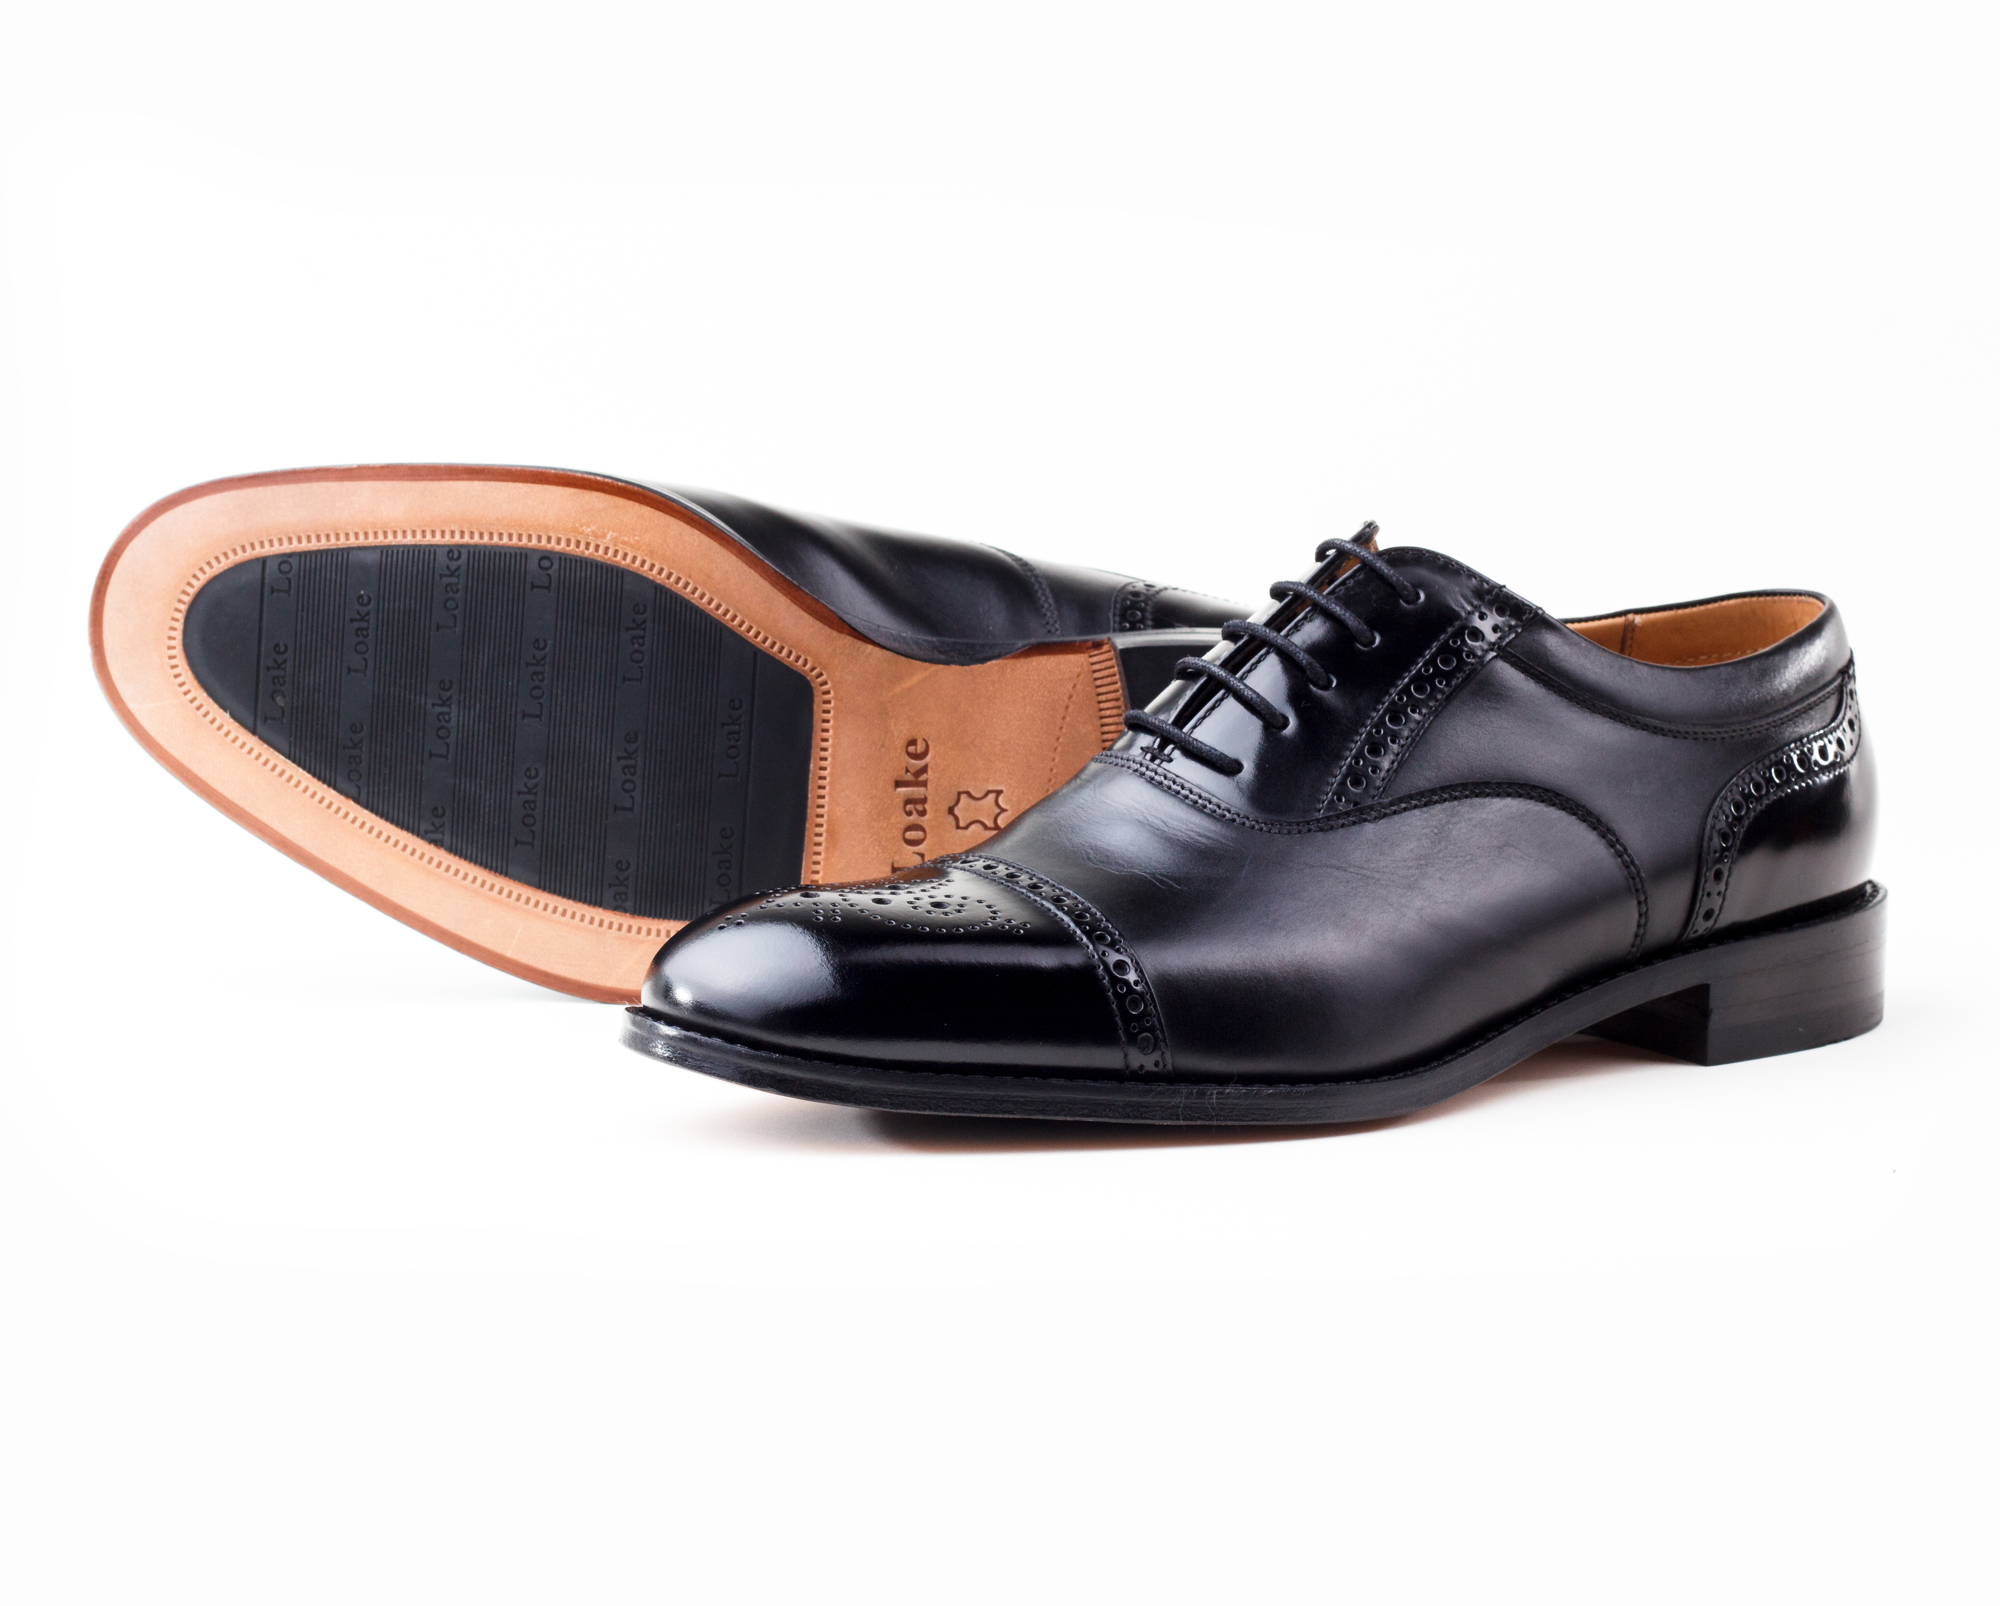 фото Броги Loake, WOODSTOCK BLACK от магазина MENSHOES